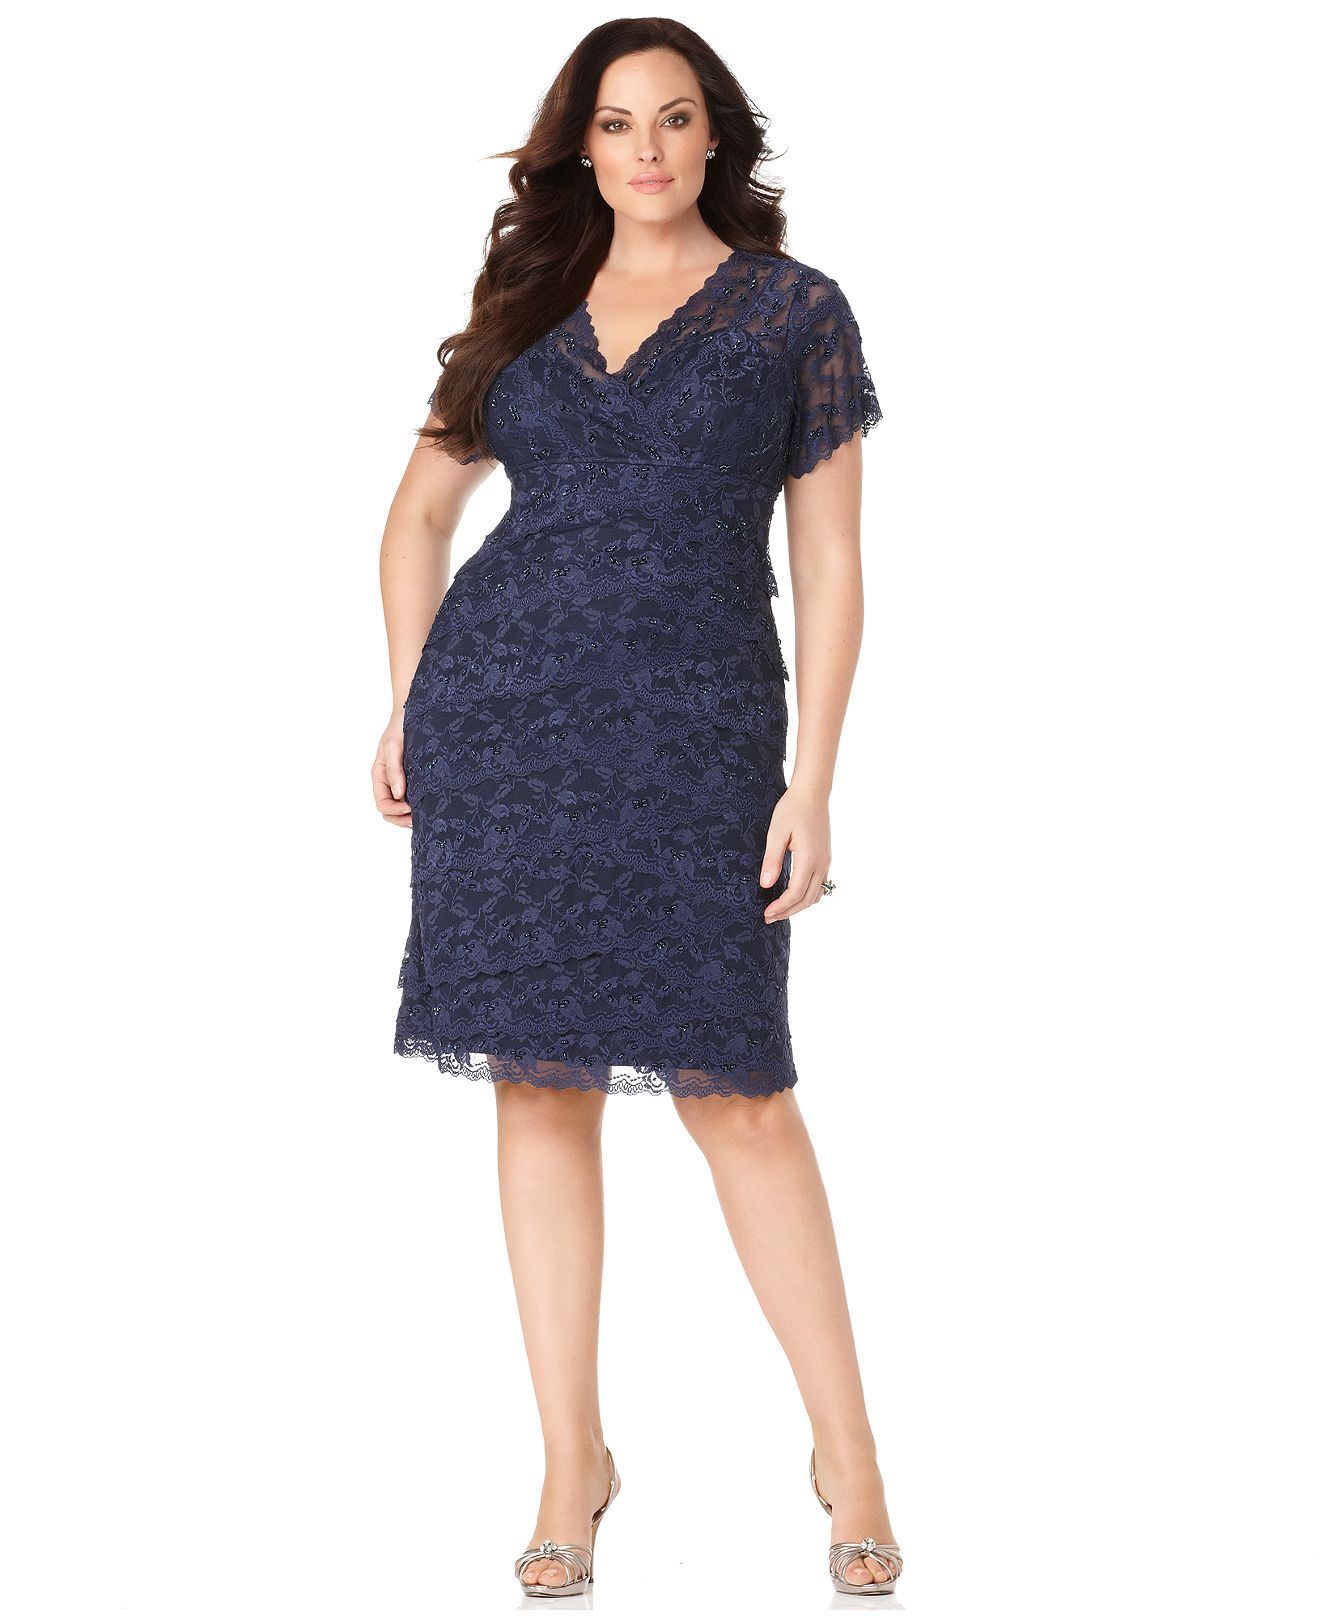 Marina Plus Size Dresses